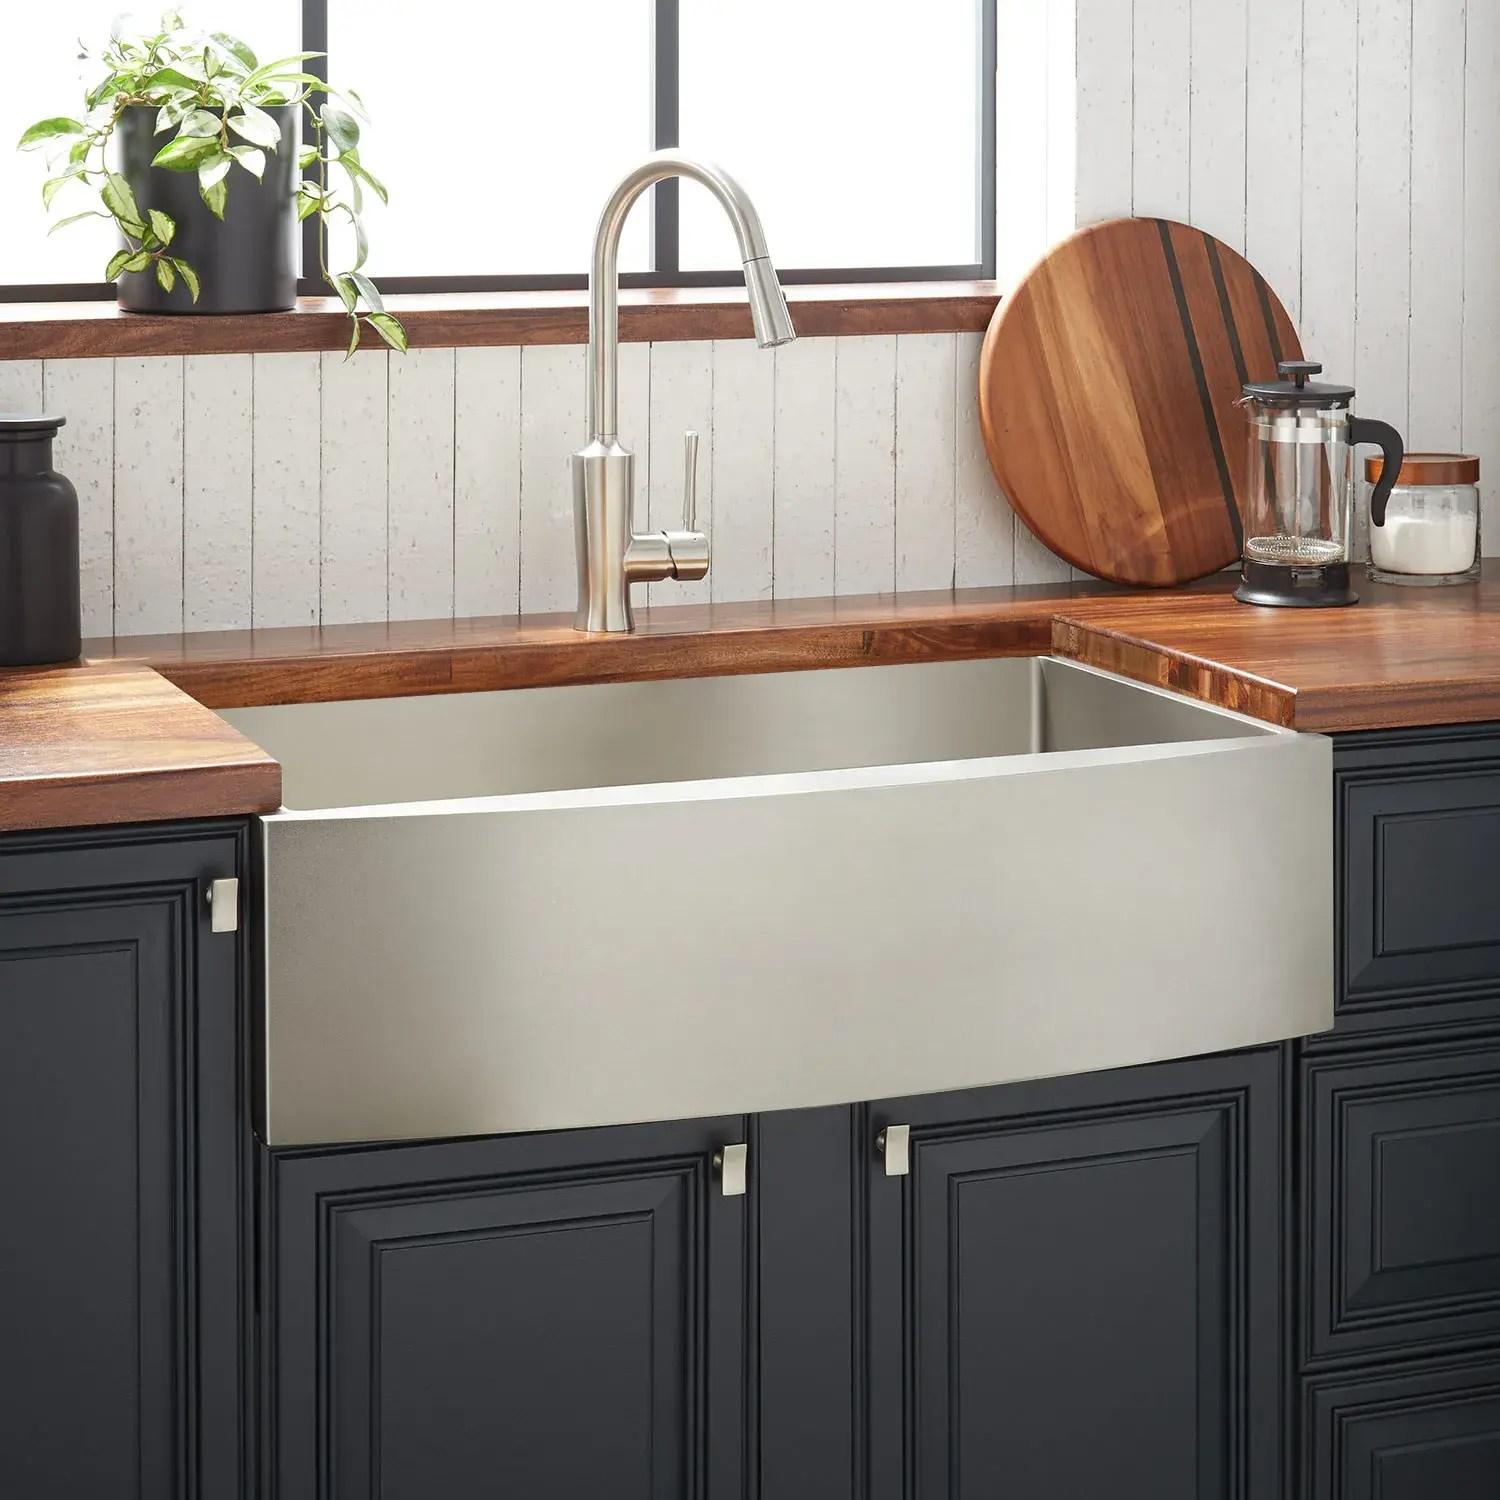 36 atlas stainless steel farmhouse sink curved apron pewter